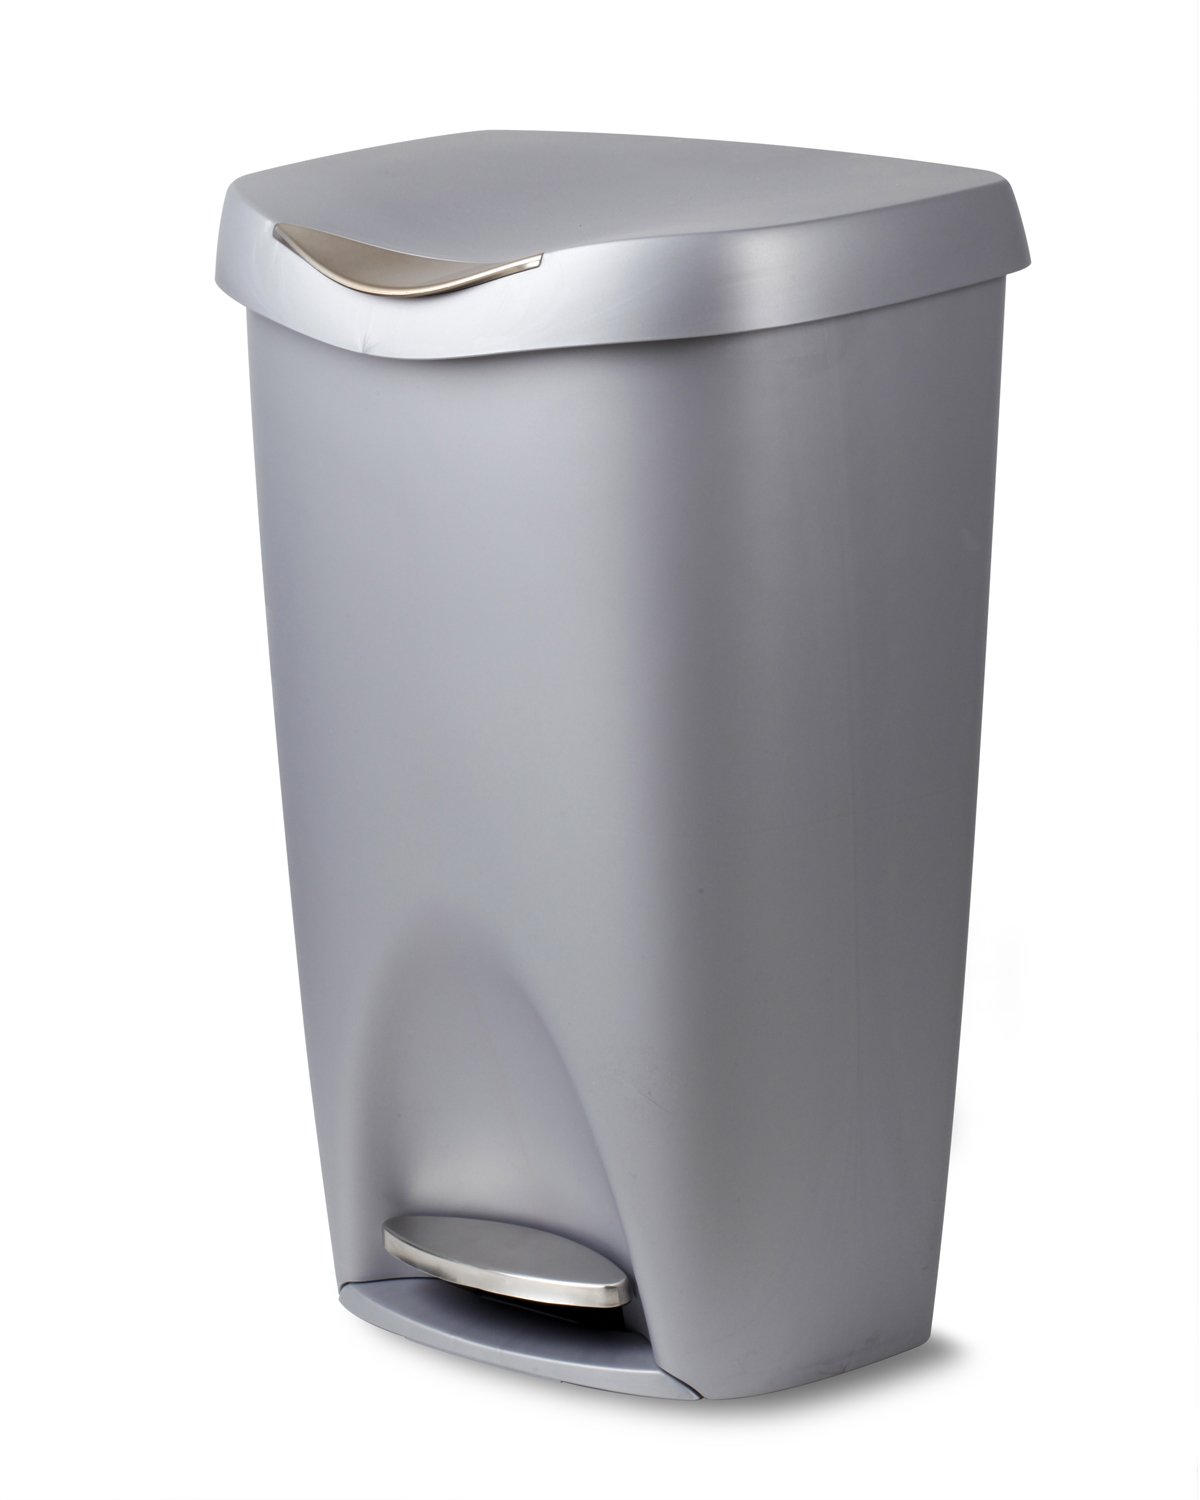 Amazon.com: Umbra Brim Large Kitchen Trash Can with Stainless ...